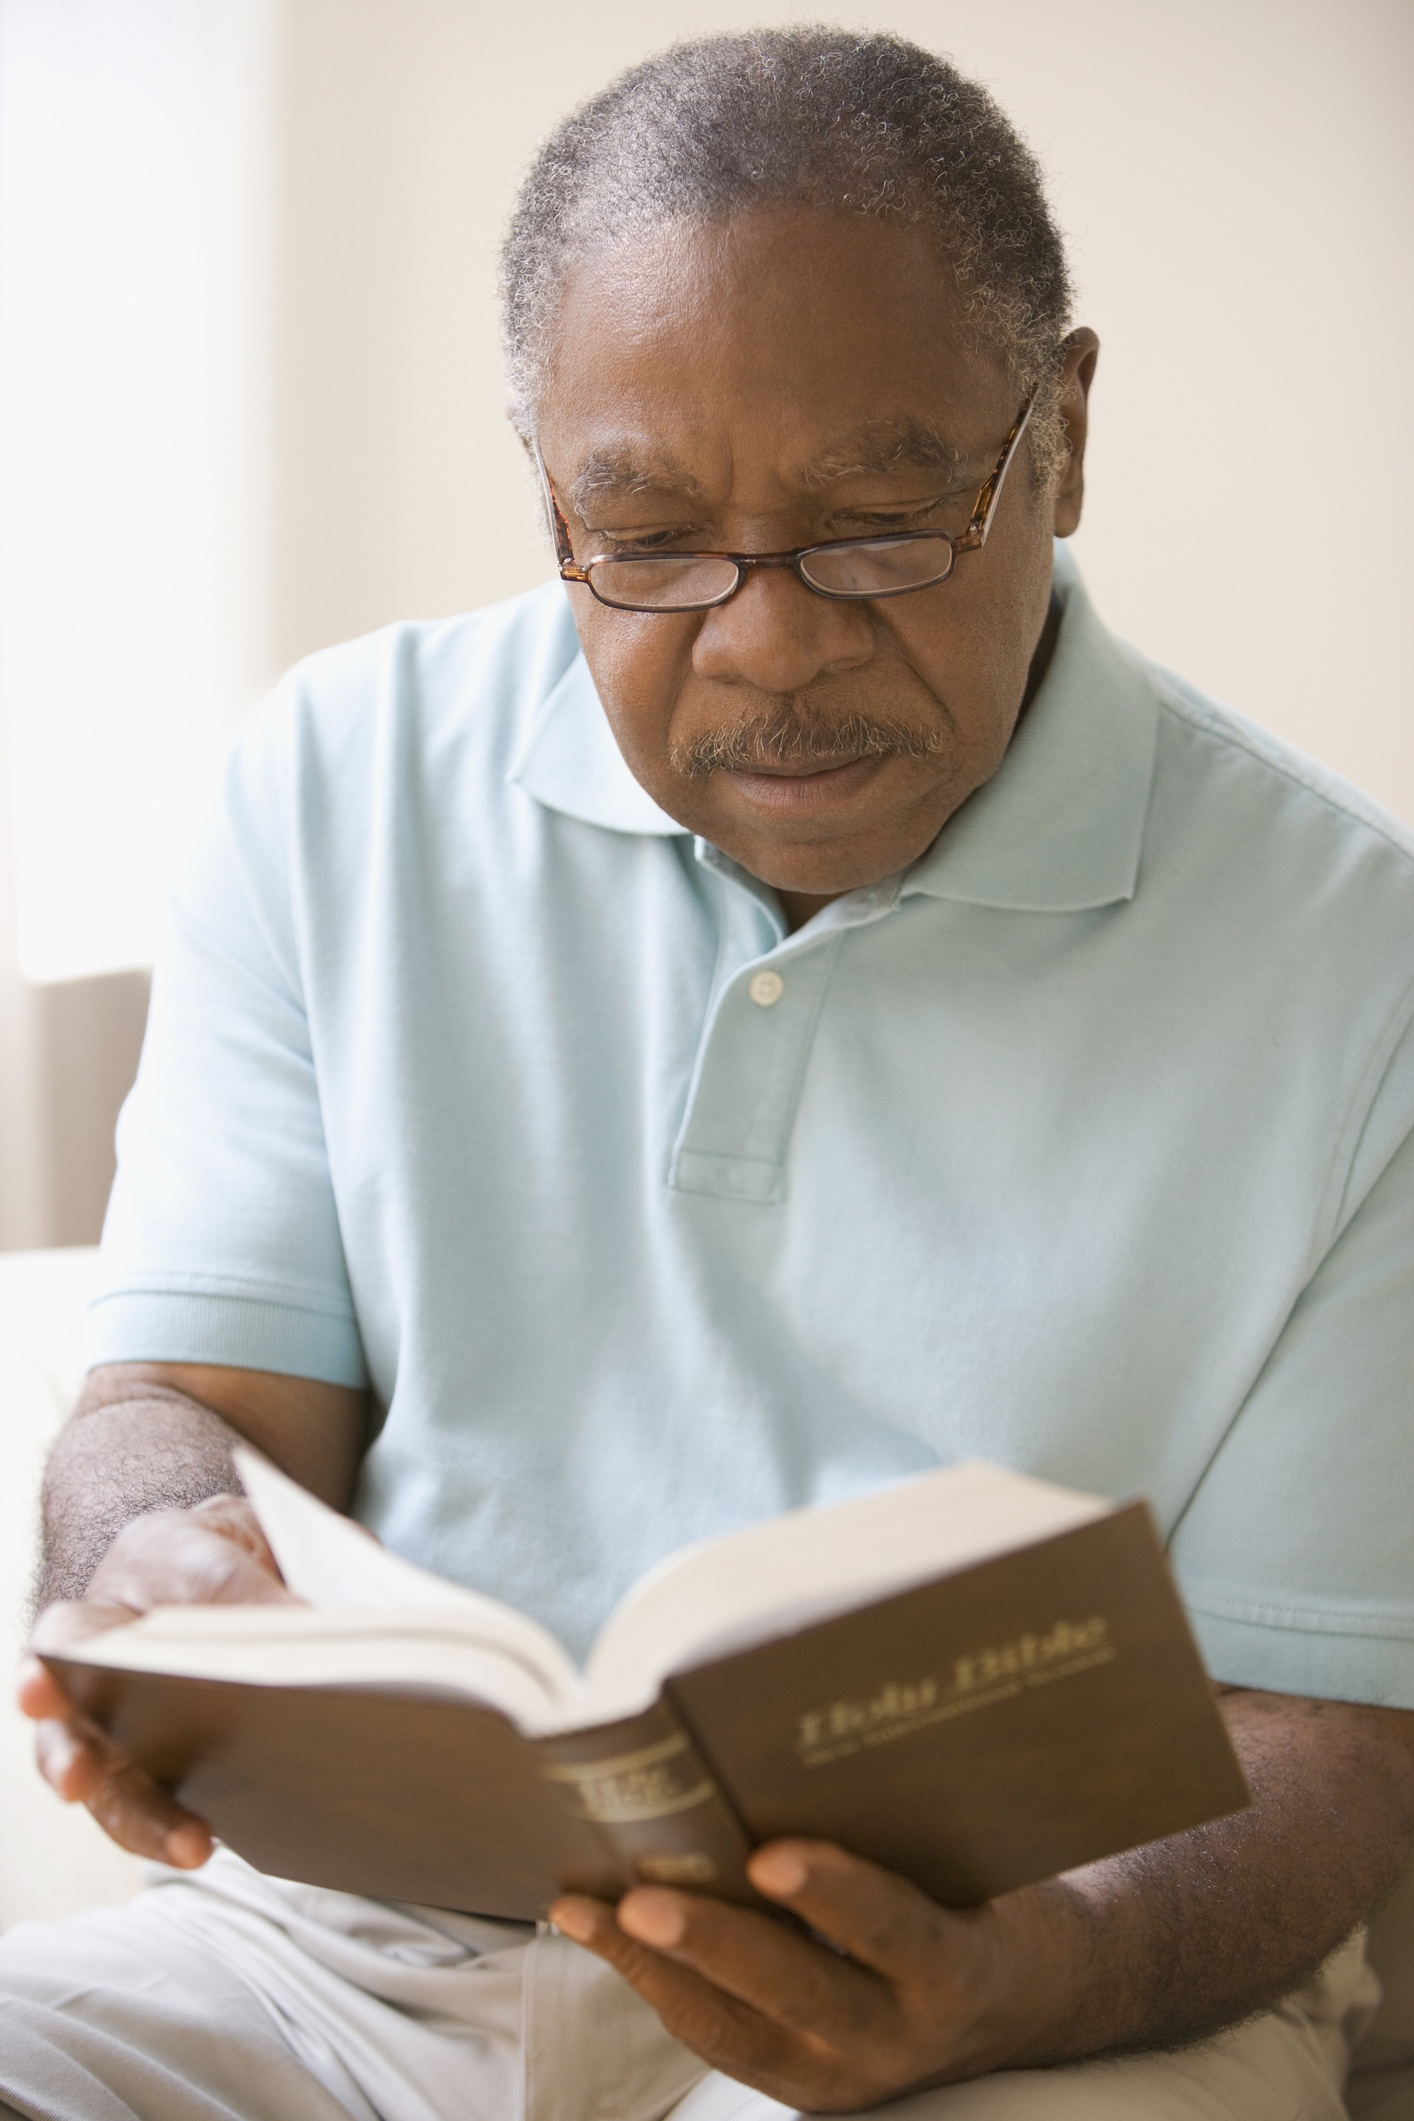 An older man reading his Bible.